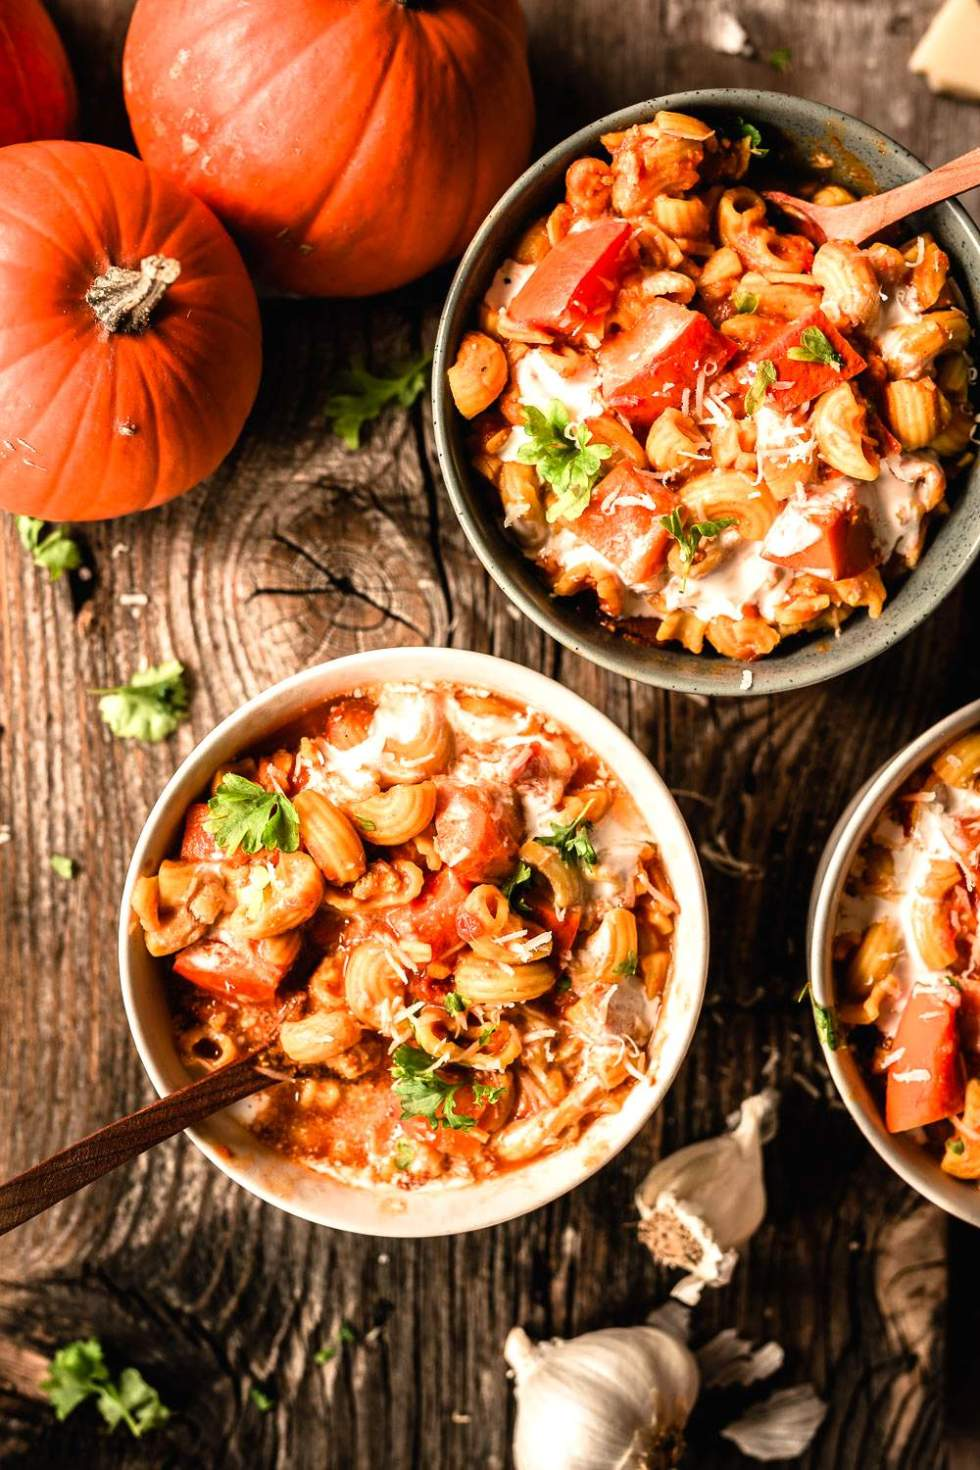 Pumpkin stew with macaroni